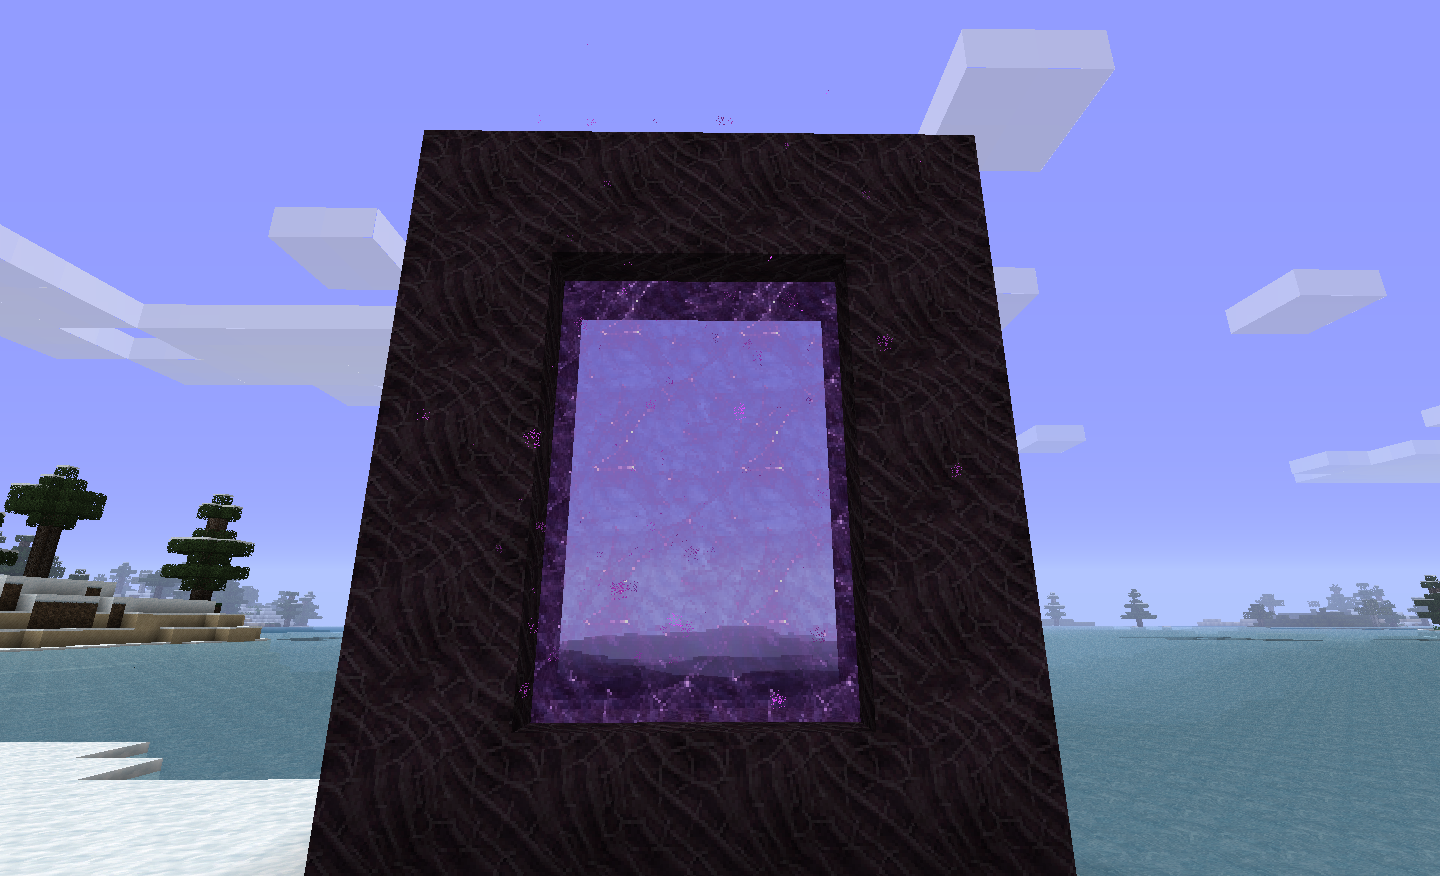 how to make a nether portal in real life